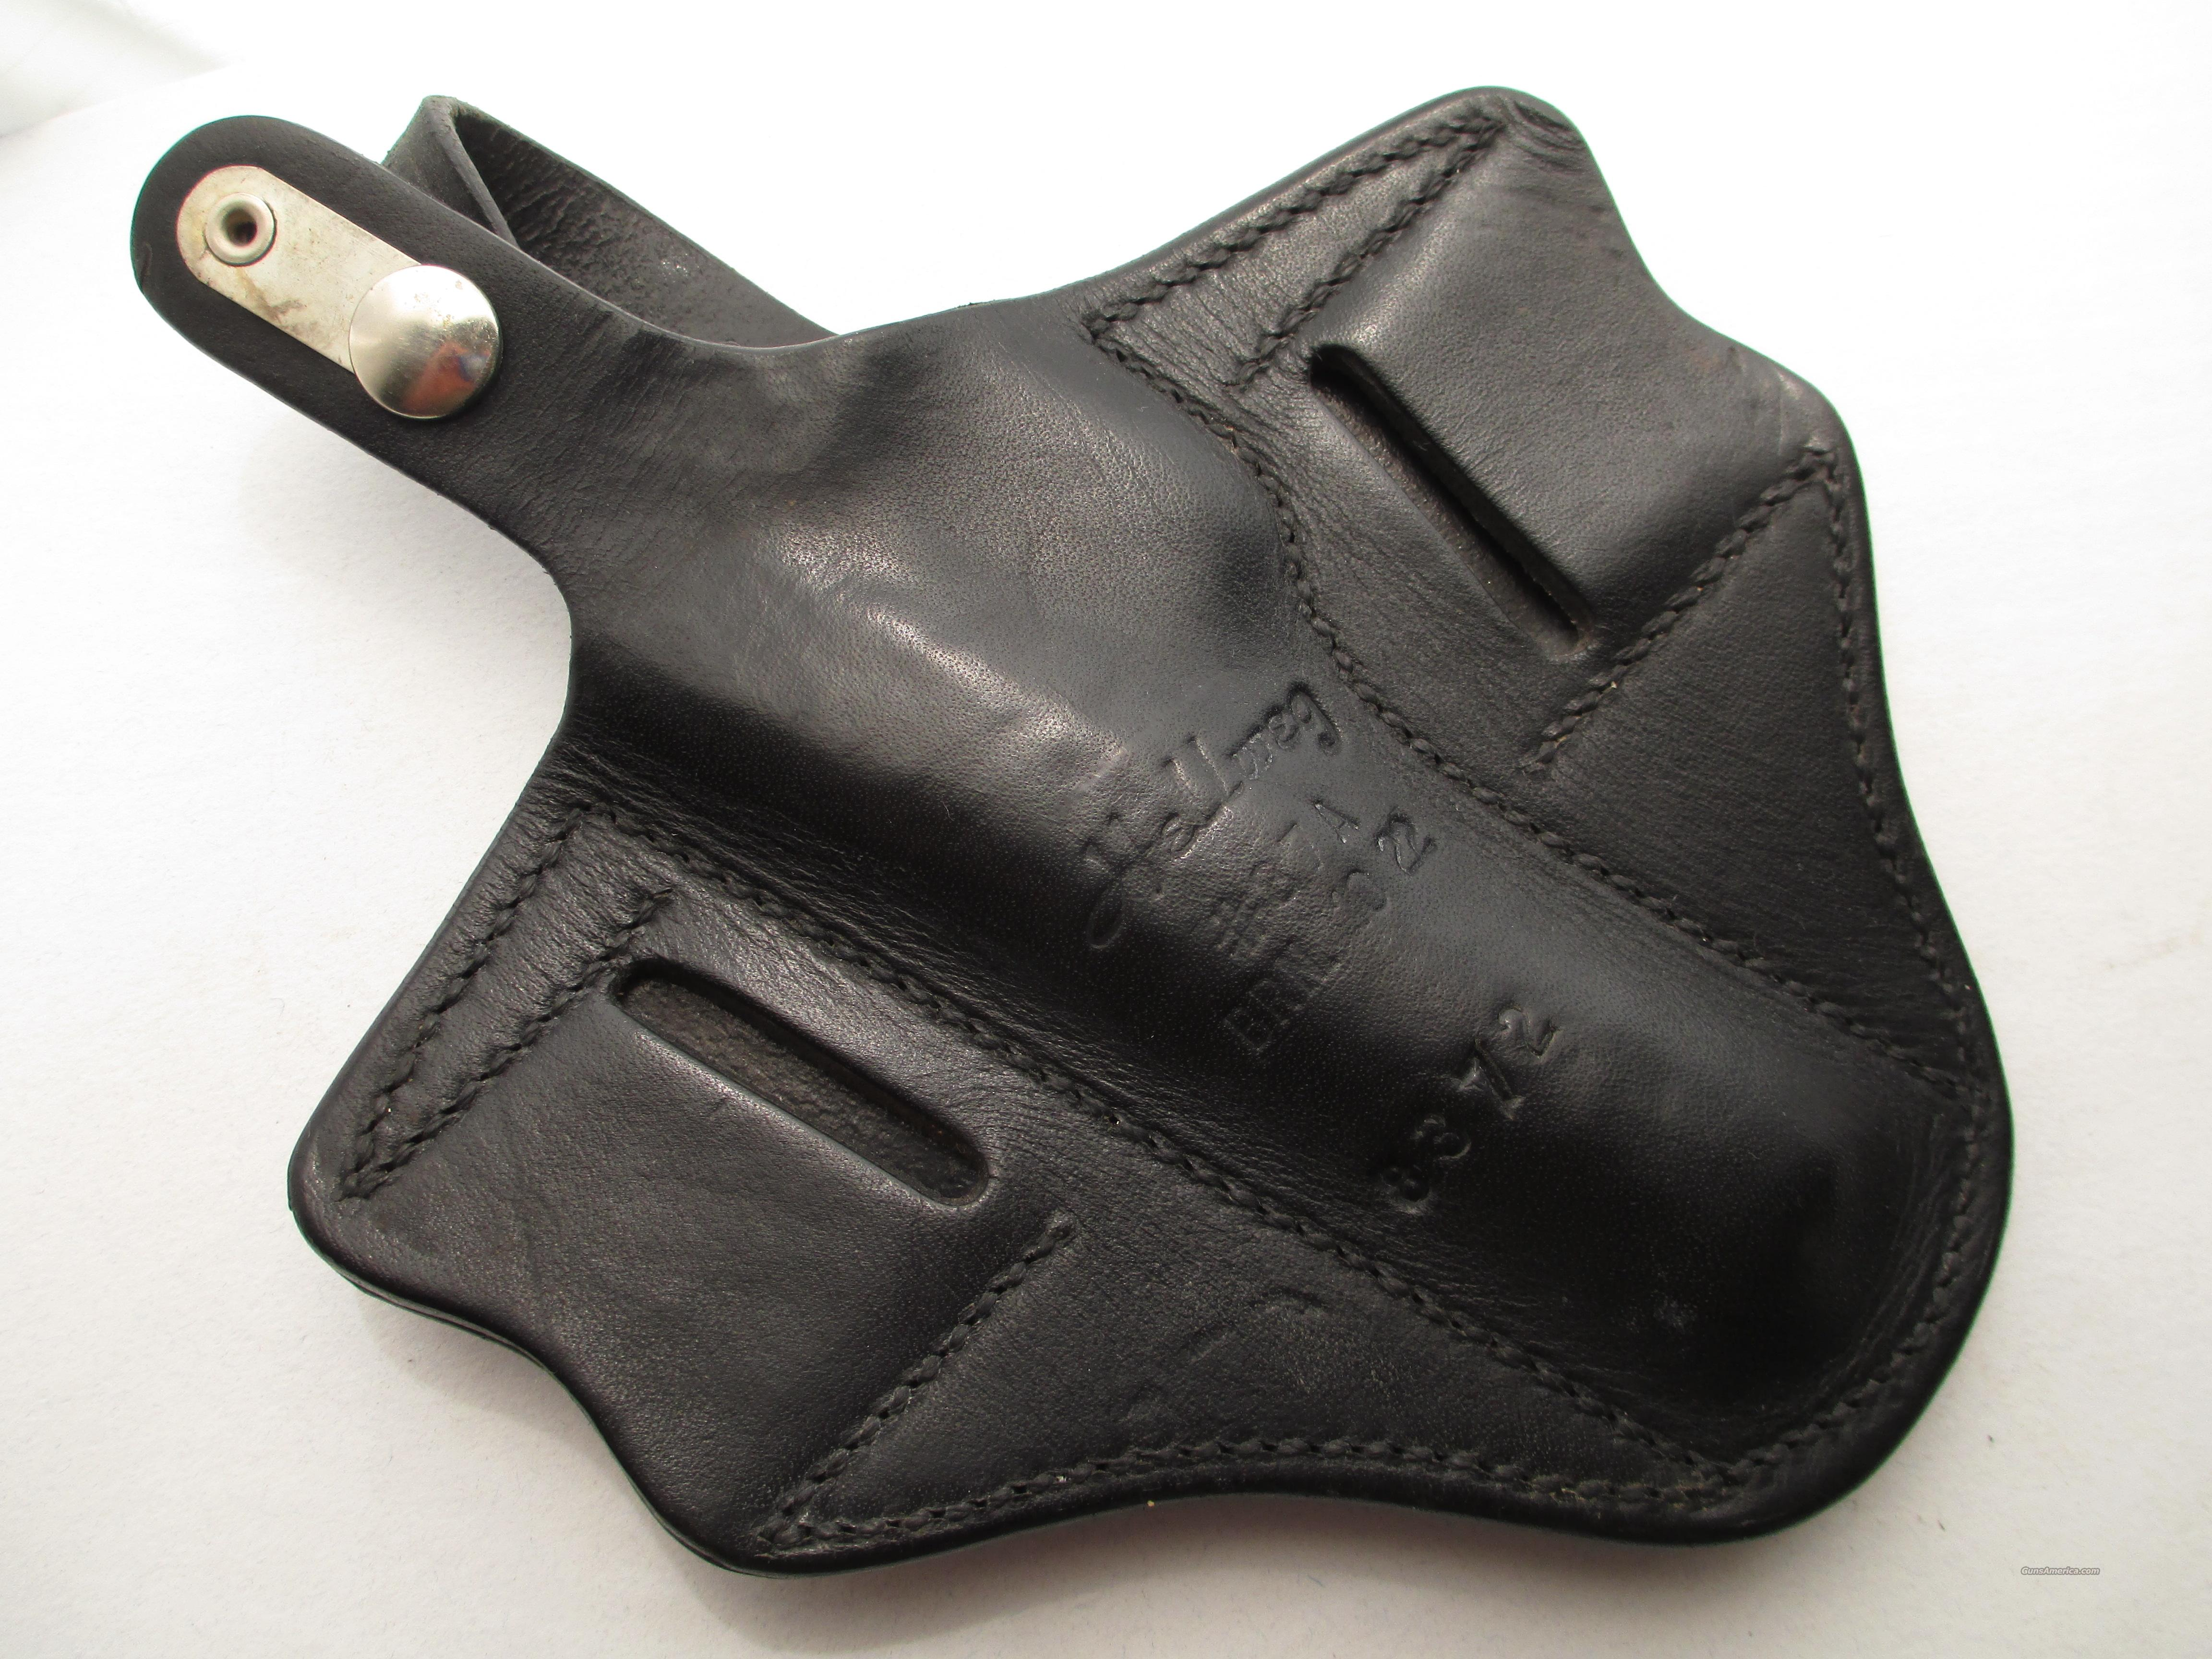 1910 1922 BROWNING  FN  HOLSTER  Hellweg #87A BRN #10 Pancake Holster  Non-Guns > Holsters and Gunleather > Concealed Carry